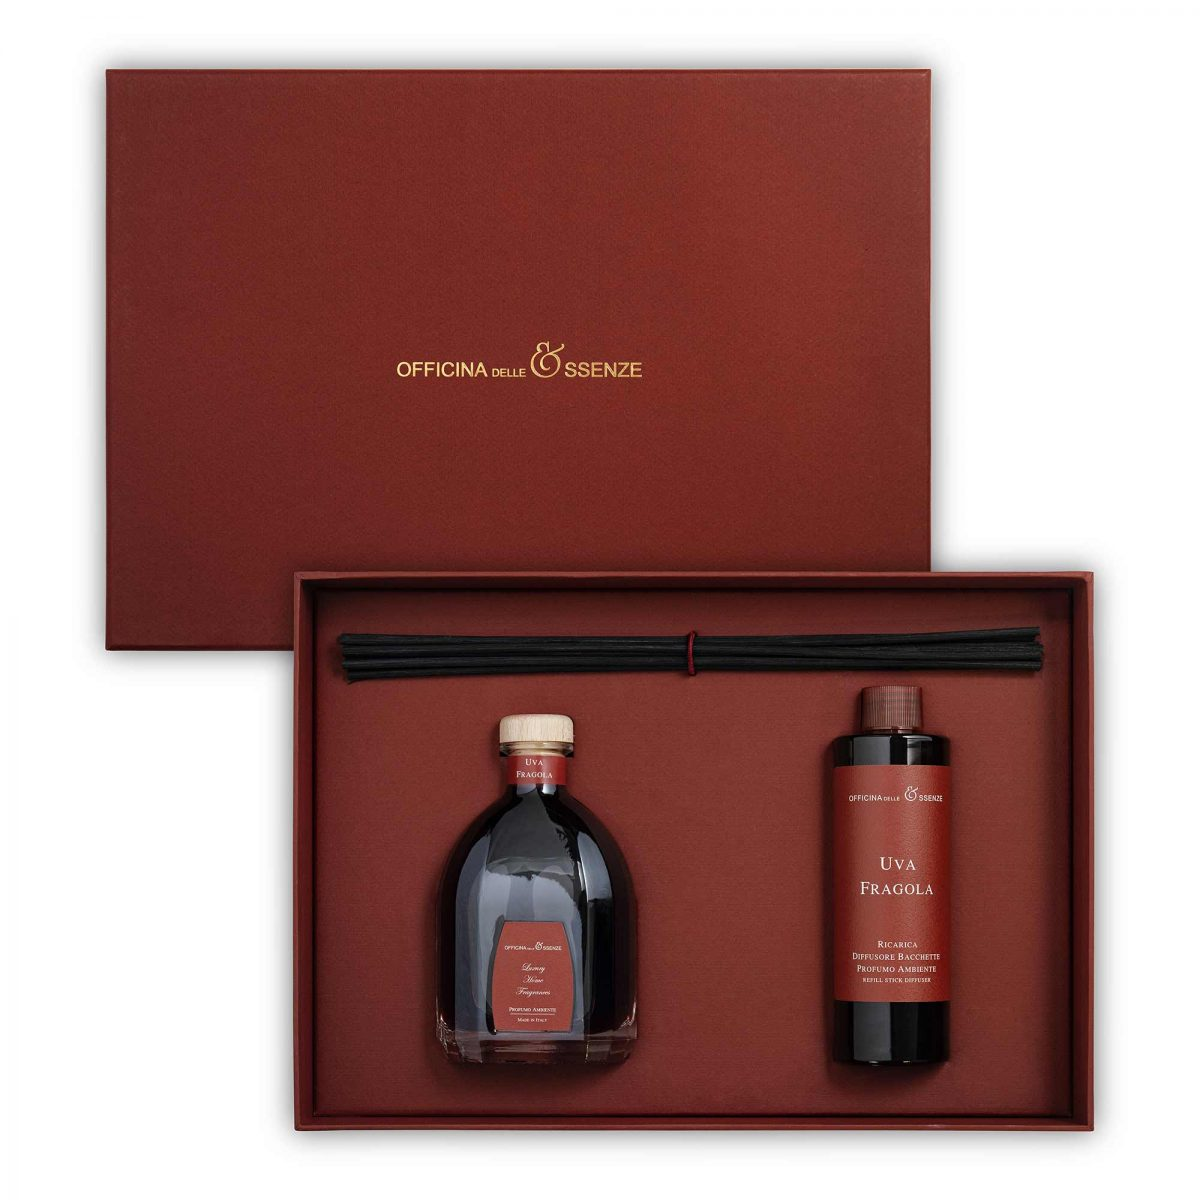 The gift box contains a 250 ml Home reed Diffuser and a 250 ml Refill